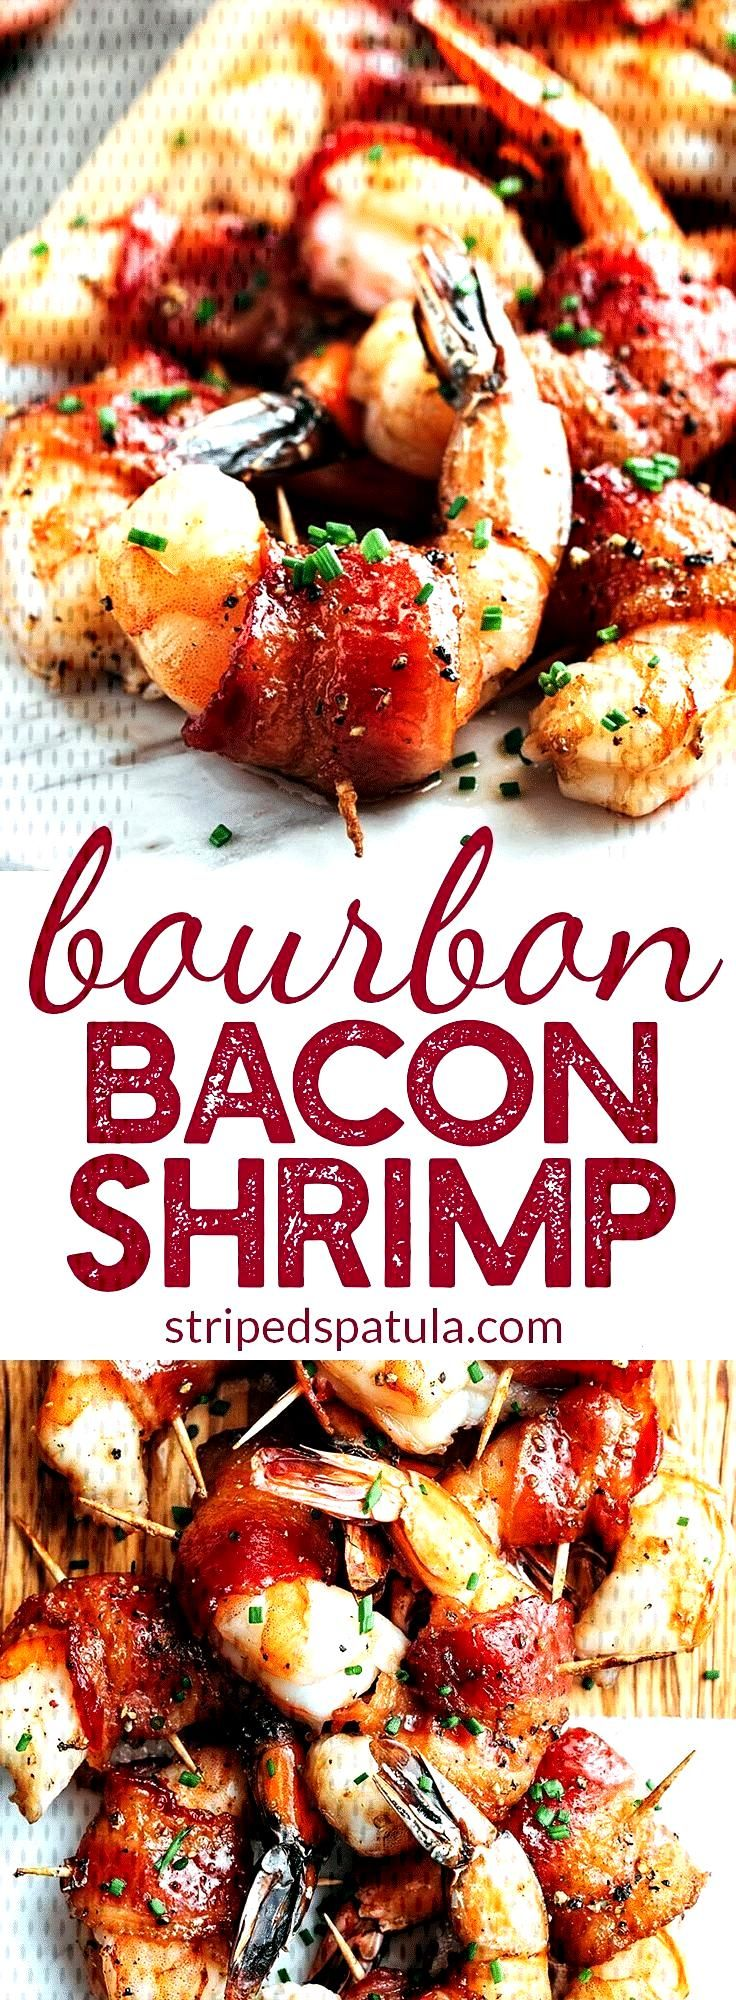 Bacon Wrapped Shrimp with Brown Sugar Bourbon Glaze - Bacon Wrapped Shrimp | Shrimp Recipes | Baco